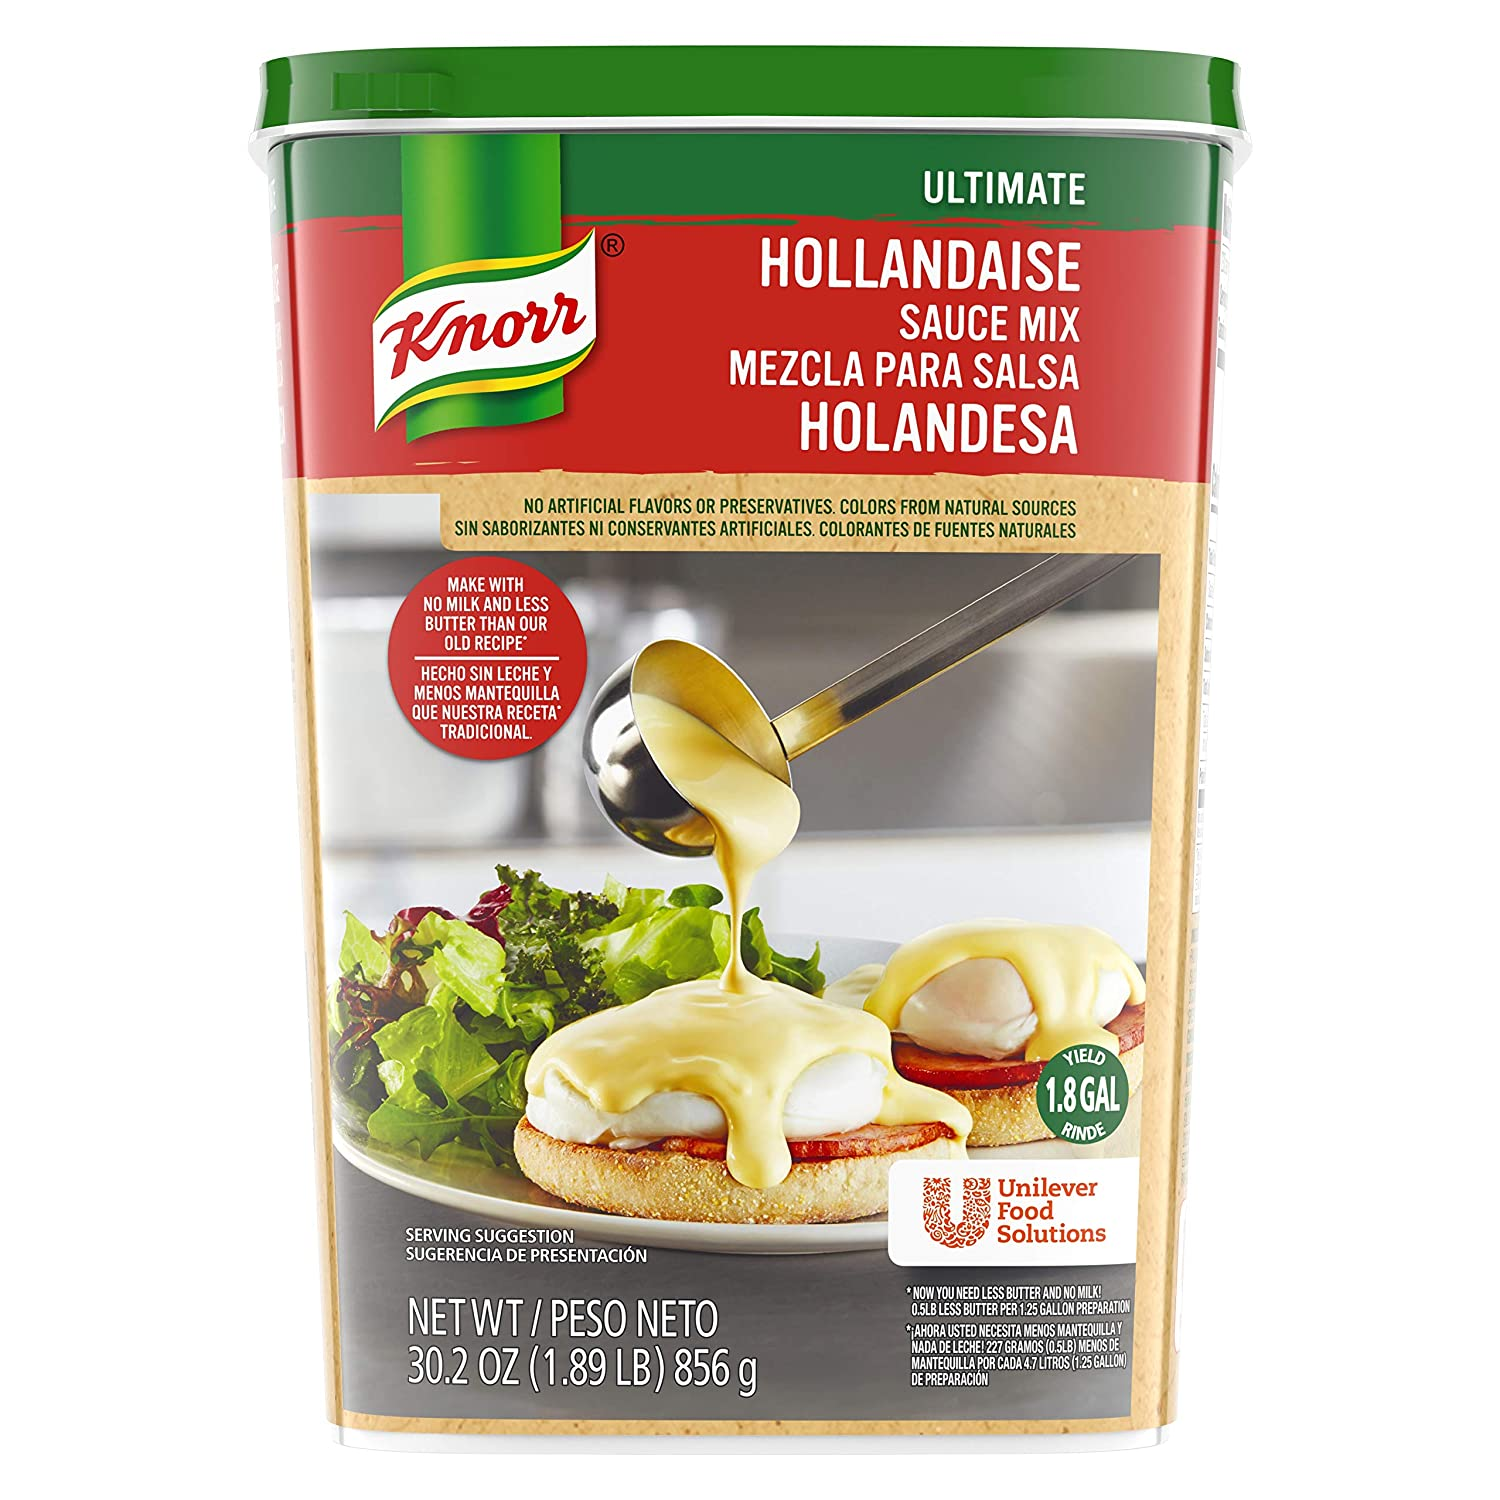 Amazon.com : Knorr Ultimate Sauce Mix Hollandaise 30.2 oz, Pack of 4 : Grocery & Gourmet Food